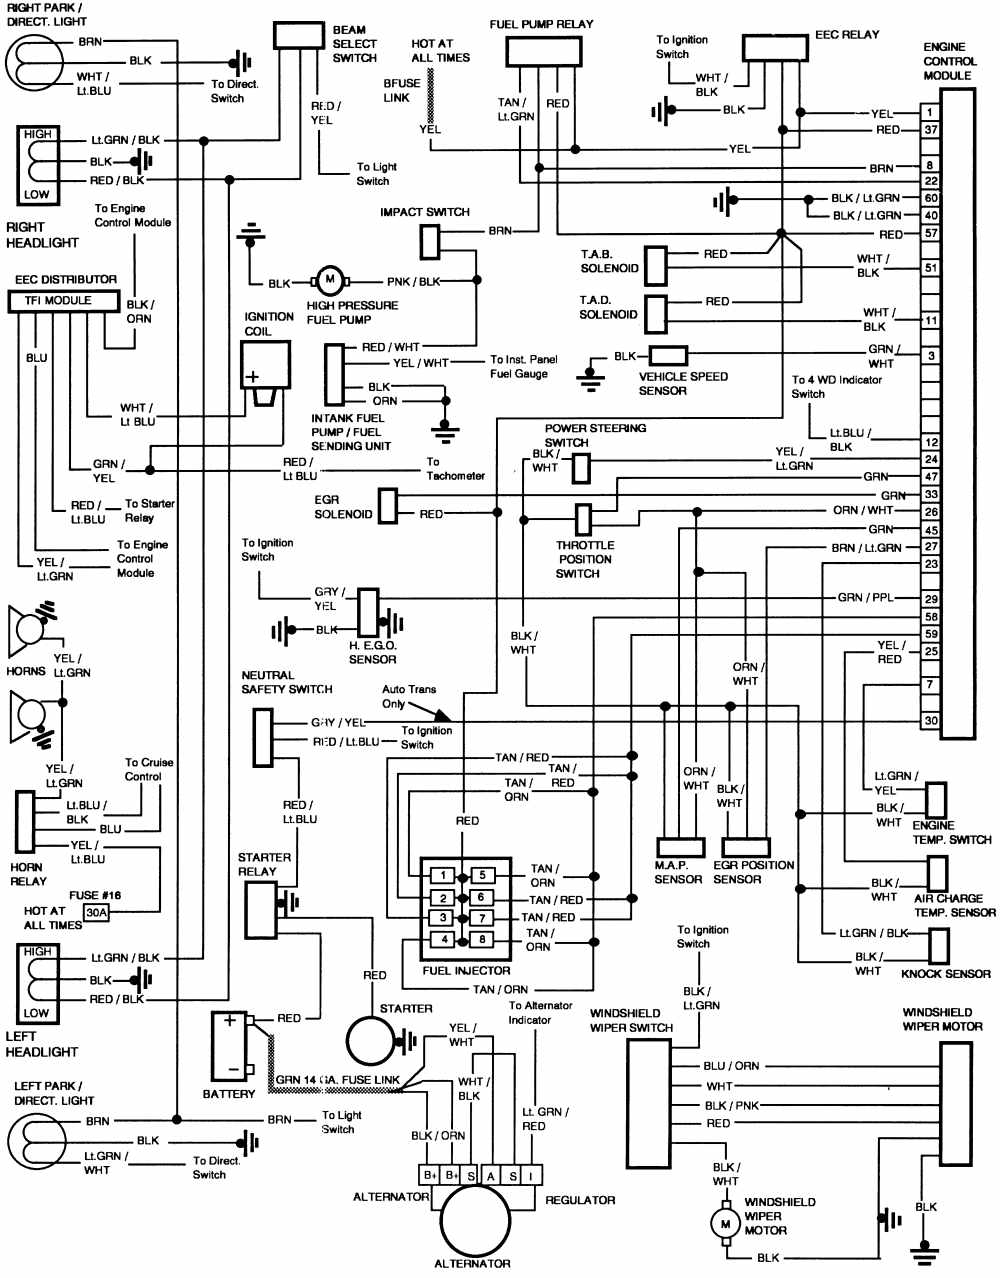 1985 f350 wiring diagram schematic 1985 f250 wiring diagram ford f-250 1986 engine control module wiring diagram | all ...